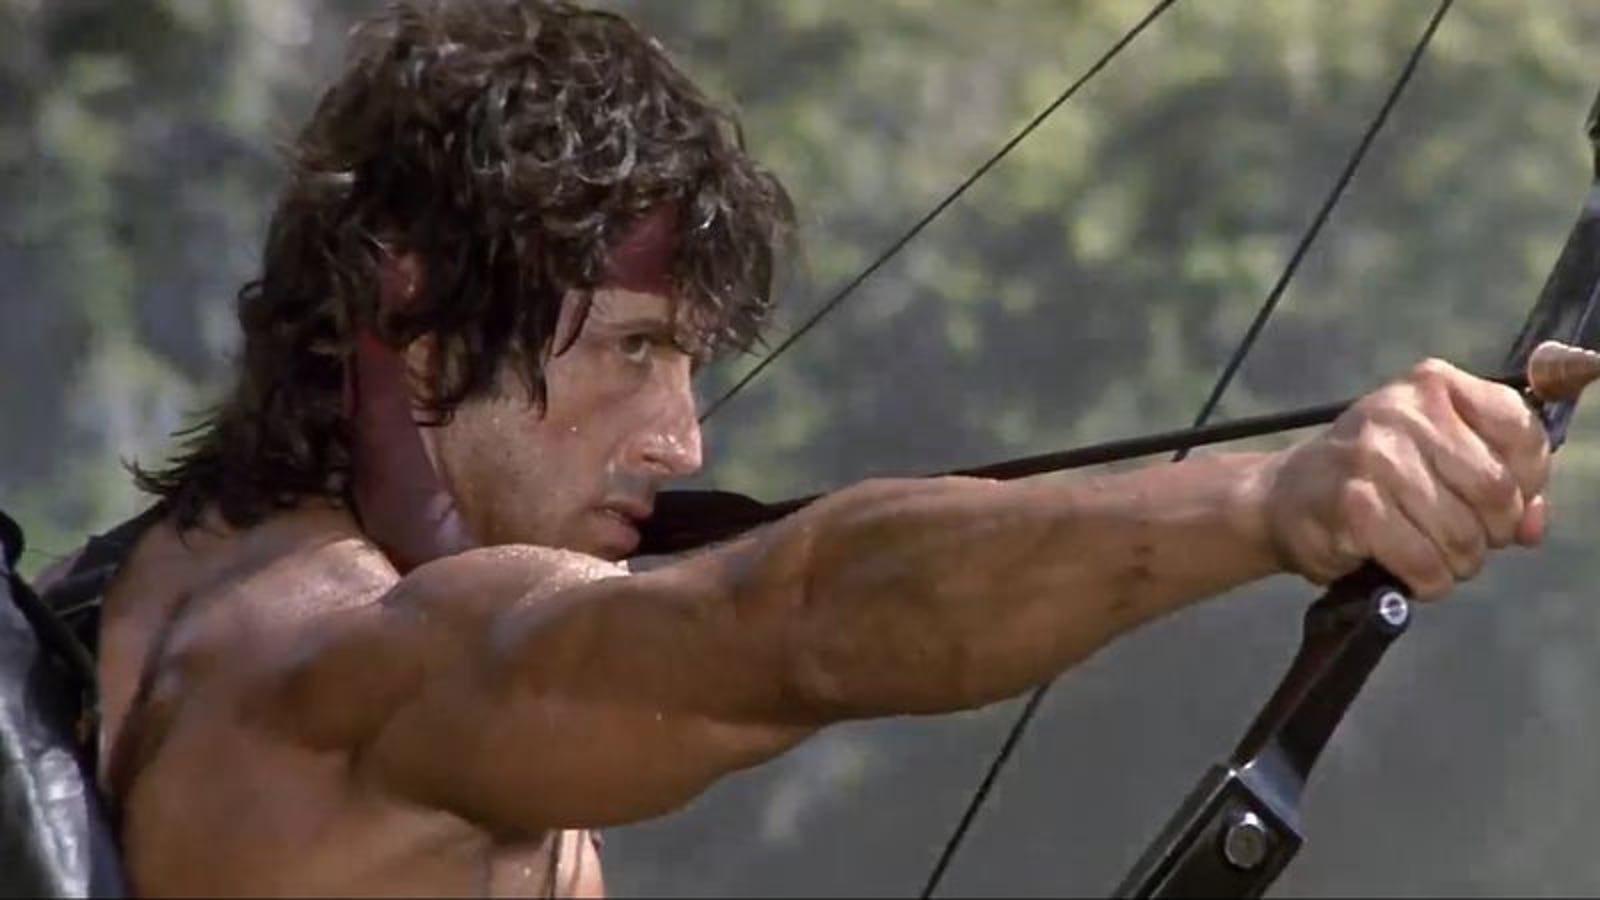 Rambo becomes a cartoon, in more ways than one